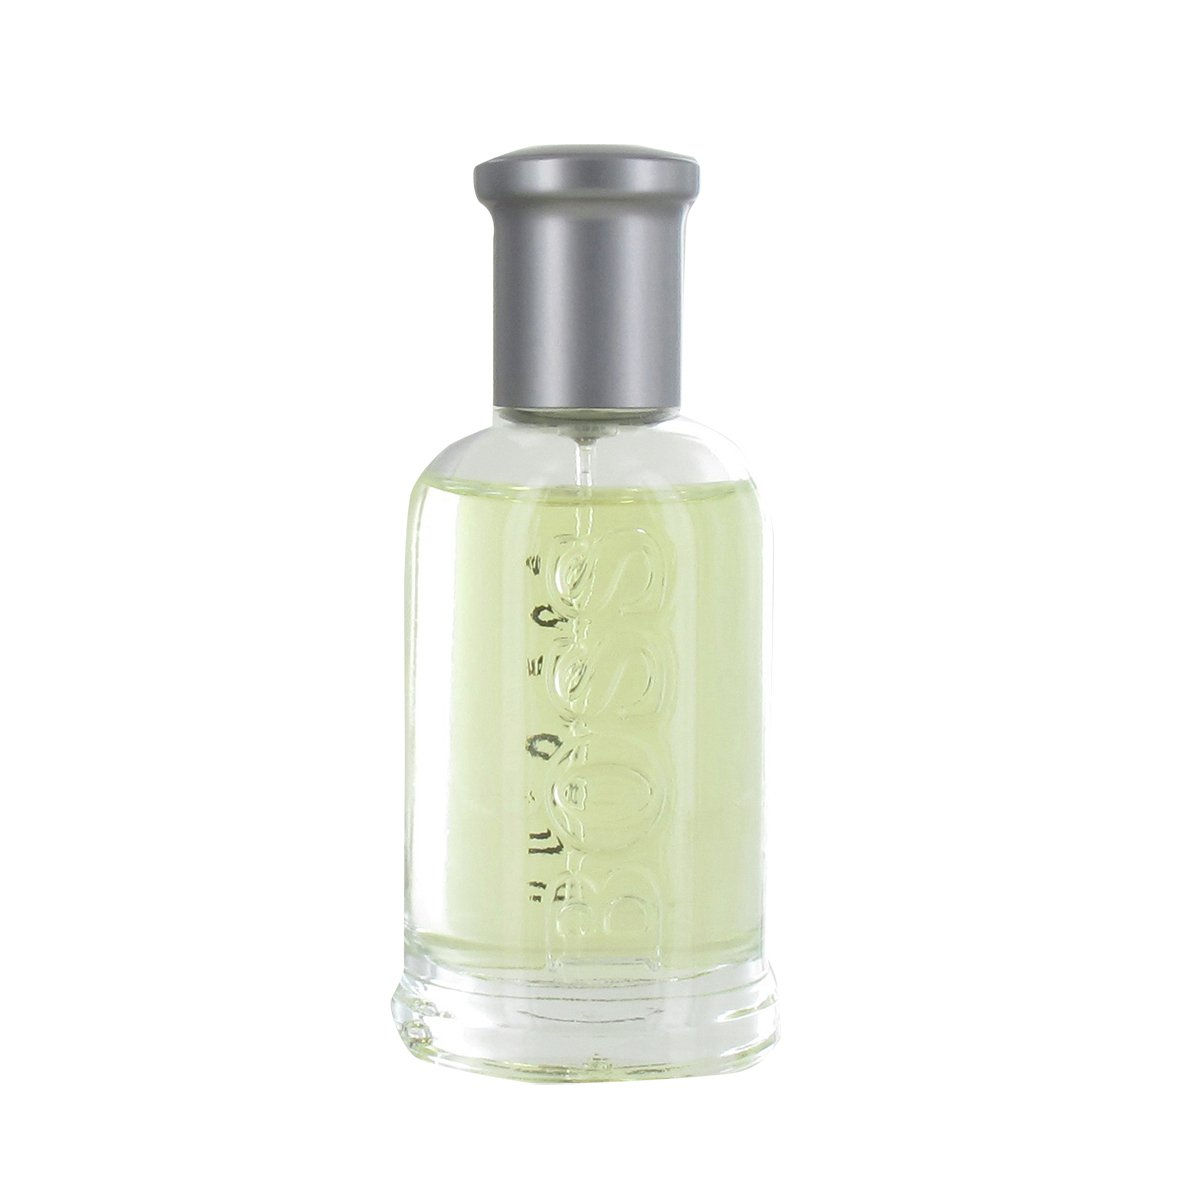 hugo boss eau de toilette 50ml